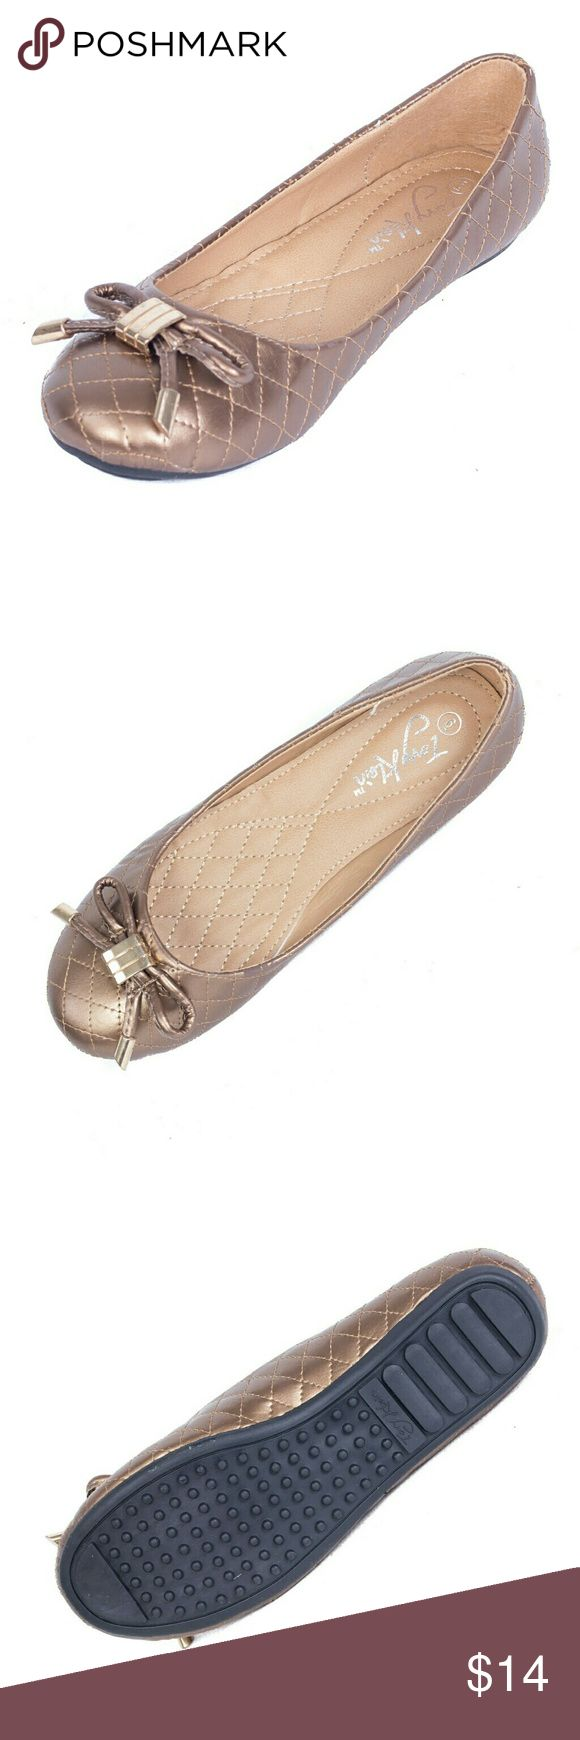 """Women Ballerina Flats with Bow,  b-1608, Bronze Brand new Tory Klein woman quilted bronze-colored ballerina flats shoes with a pretty bow in the front. Soft cushioned sole, very comfortable. Bubbled bottom sole for extra traction. A true statement in ladies shoes fashion! Measurements: larger sizes run small. Size 8 measures 9.5 inches, sz 8.5 - 9 3/4"""", sz 9 - 10"""", sz 9.5 - 10 1/4"""", sz 10 - 10.5"""", all half sizes are in 1/4"""" increments of each other. Tory K  Shoes Flats & Loafers"""